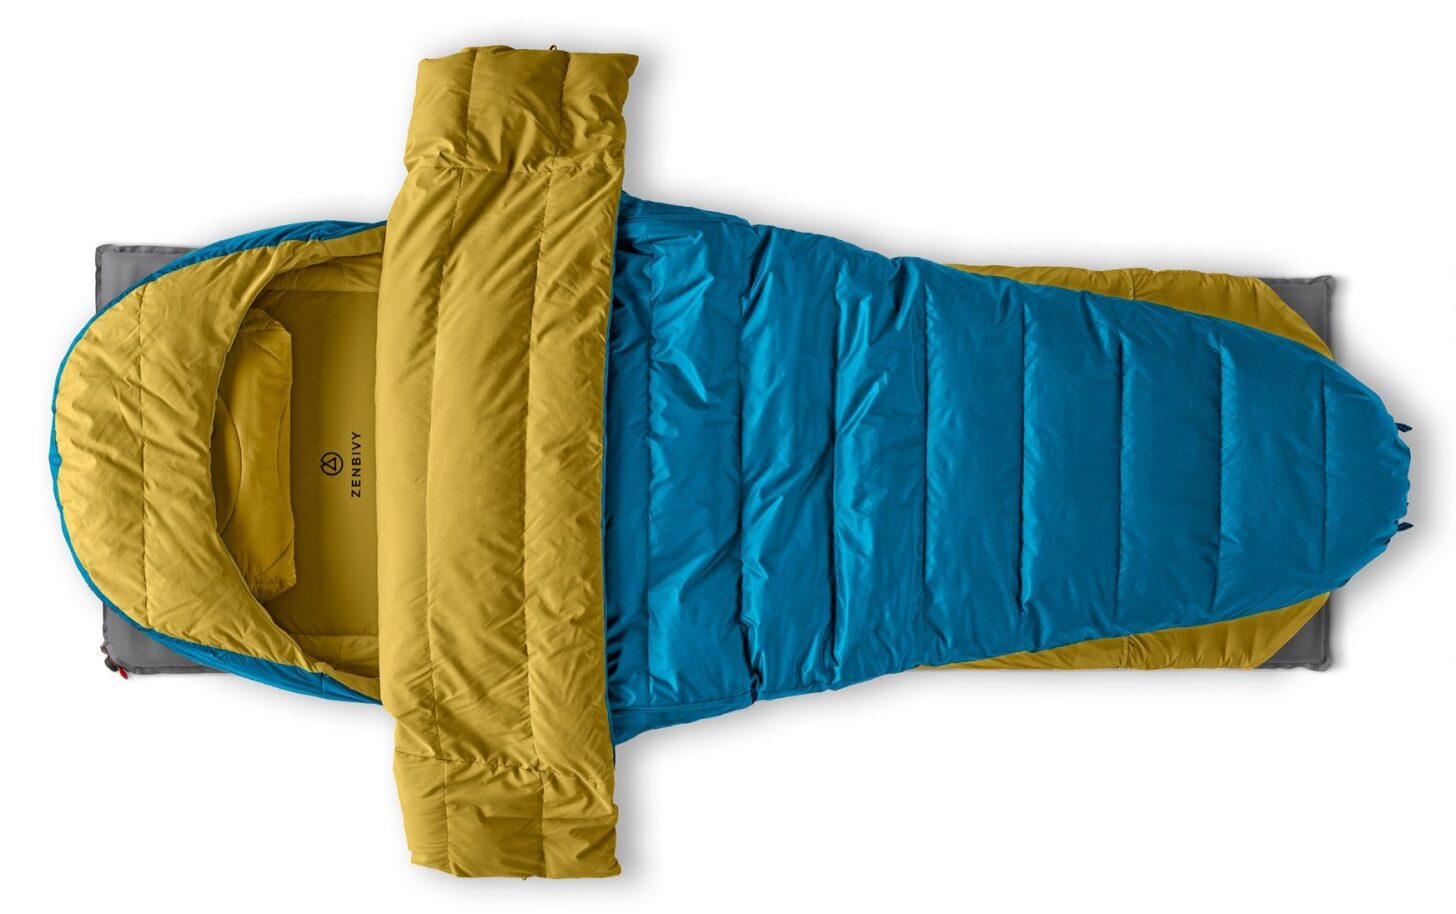 an example of the zenbivy sleep system on a white background